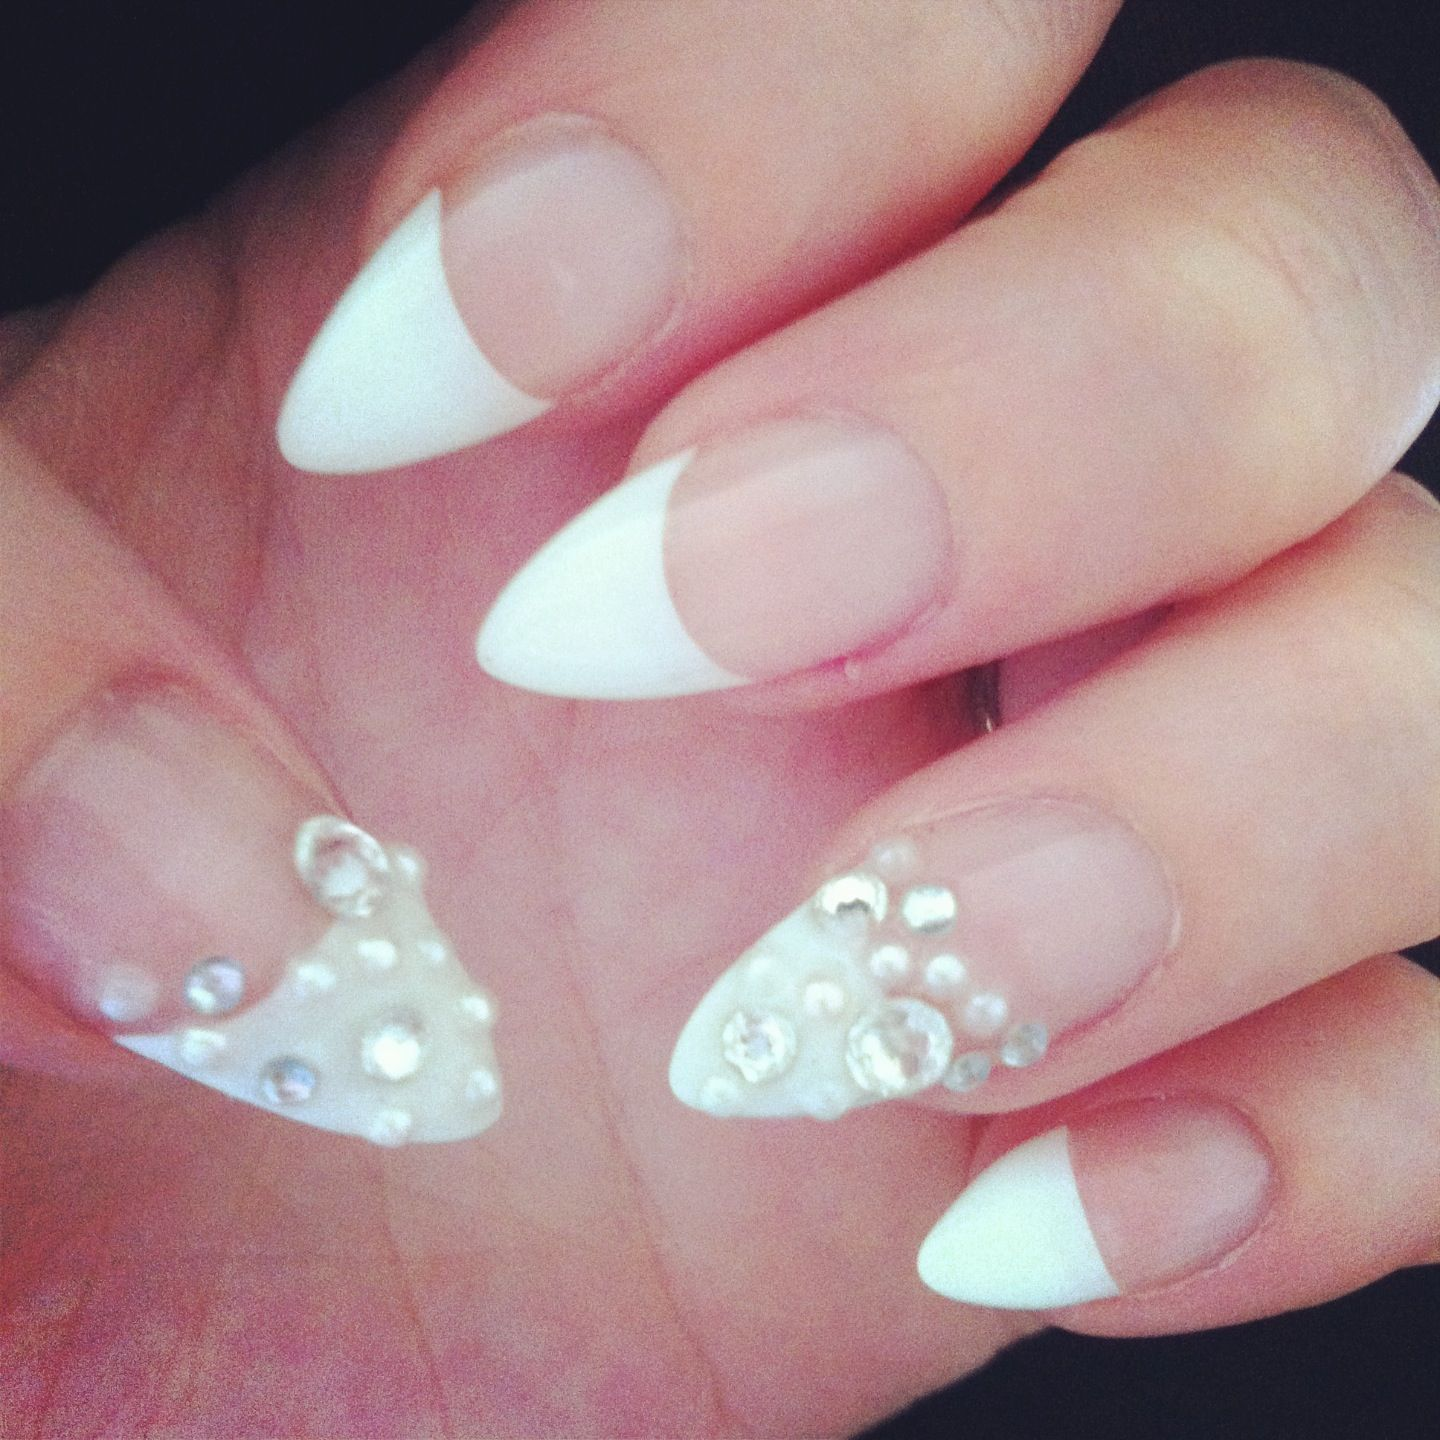 White tip nail enhancements with Swarovski crystals & white pearls ...